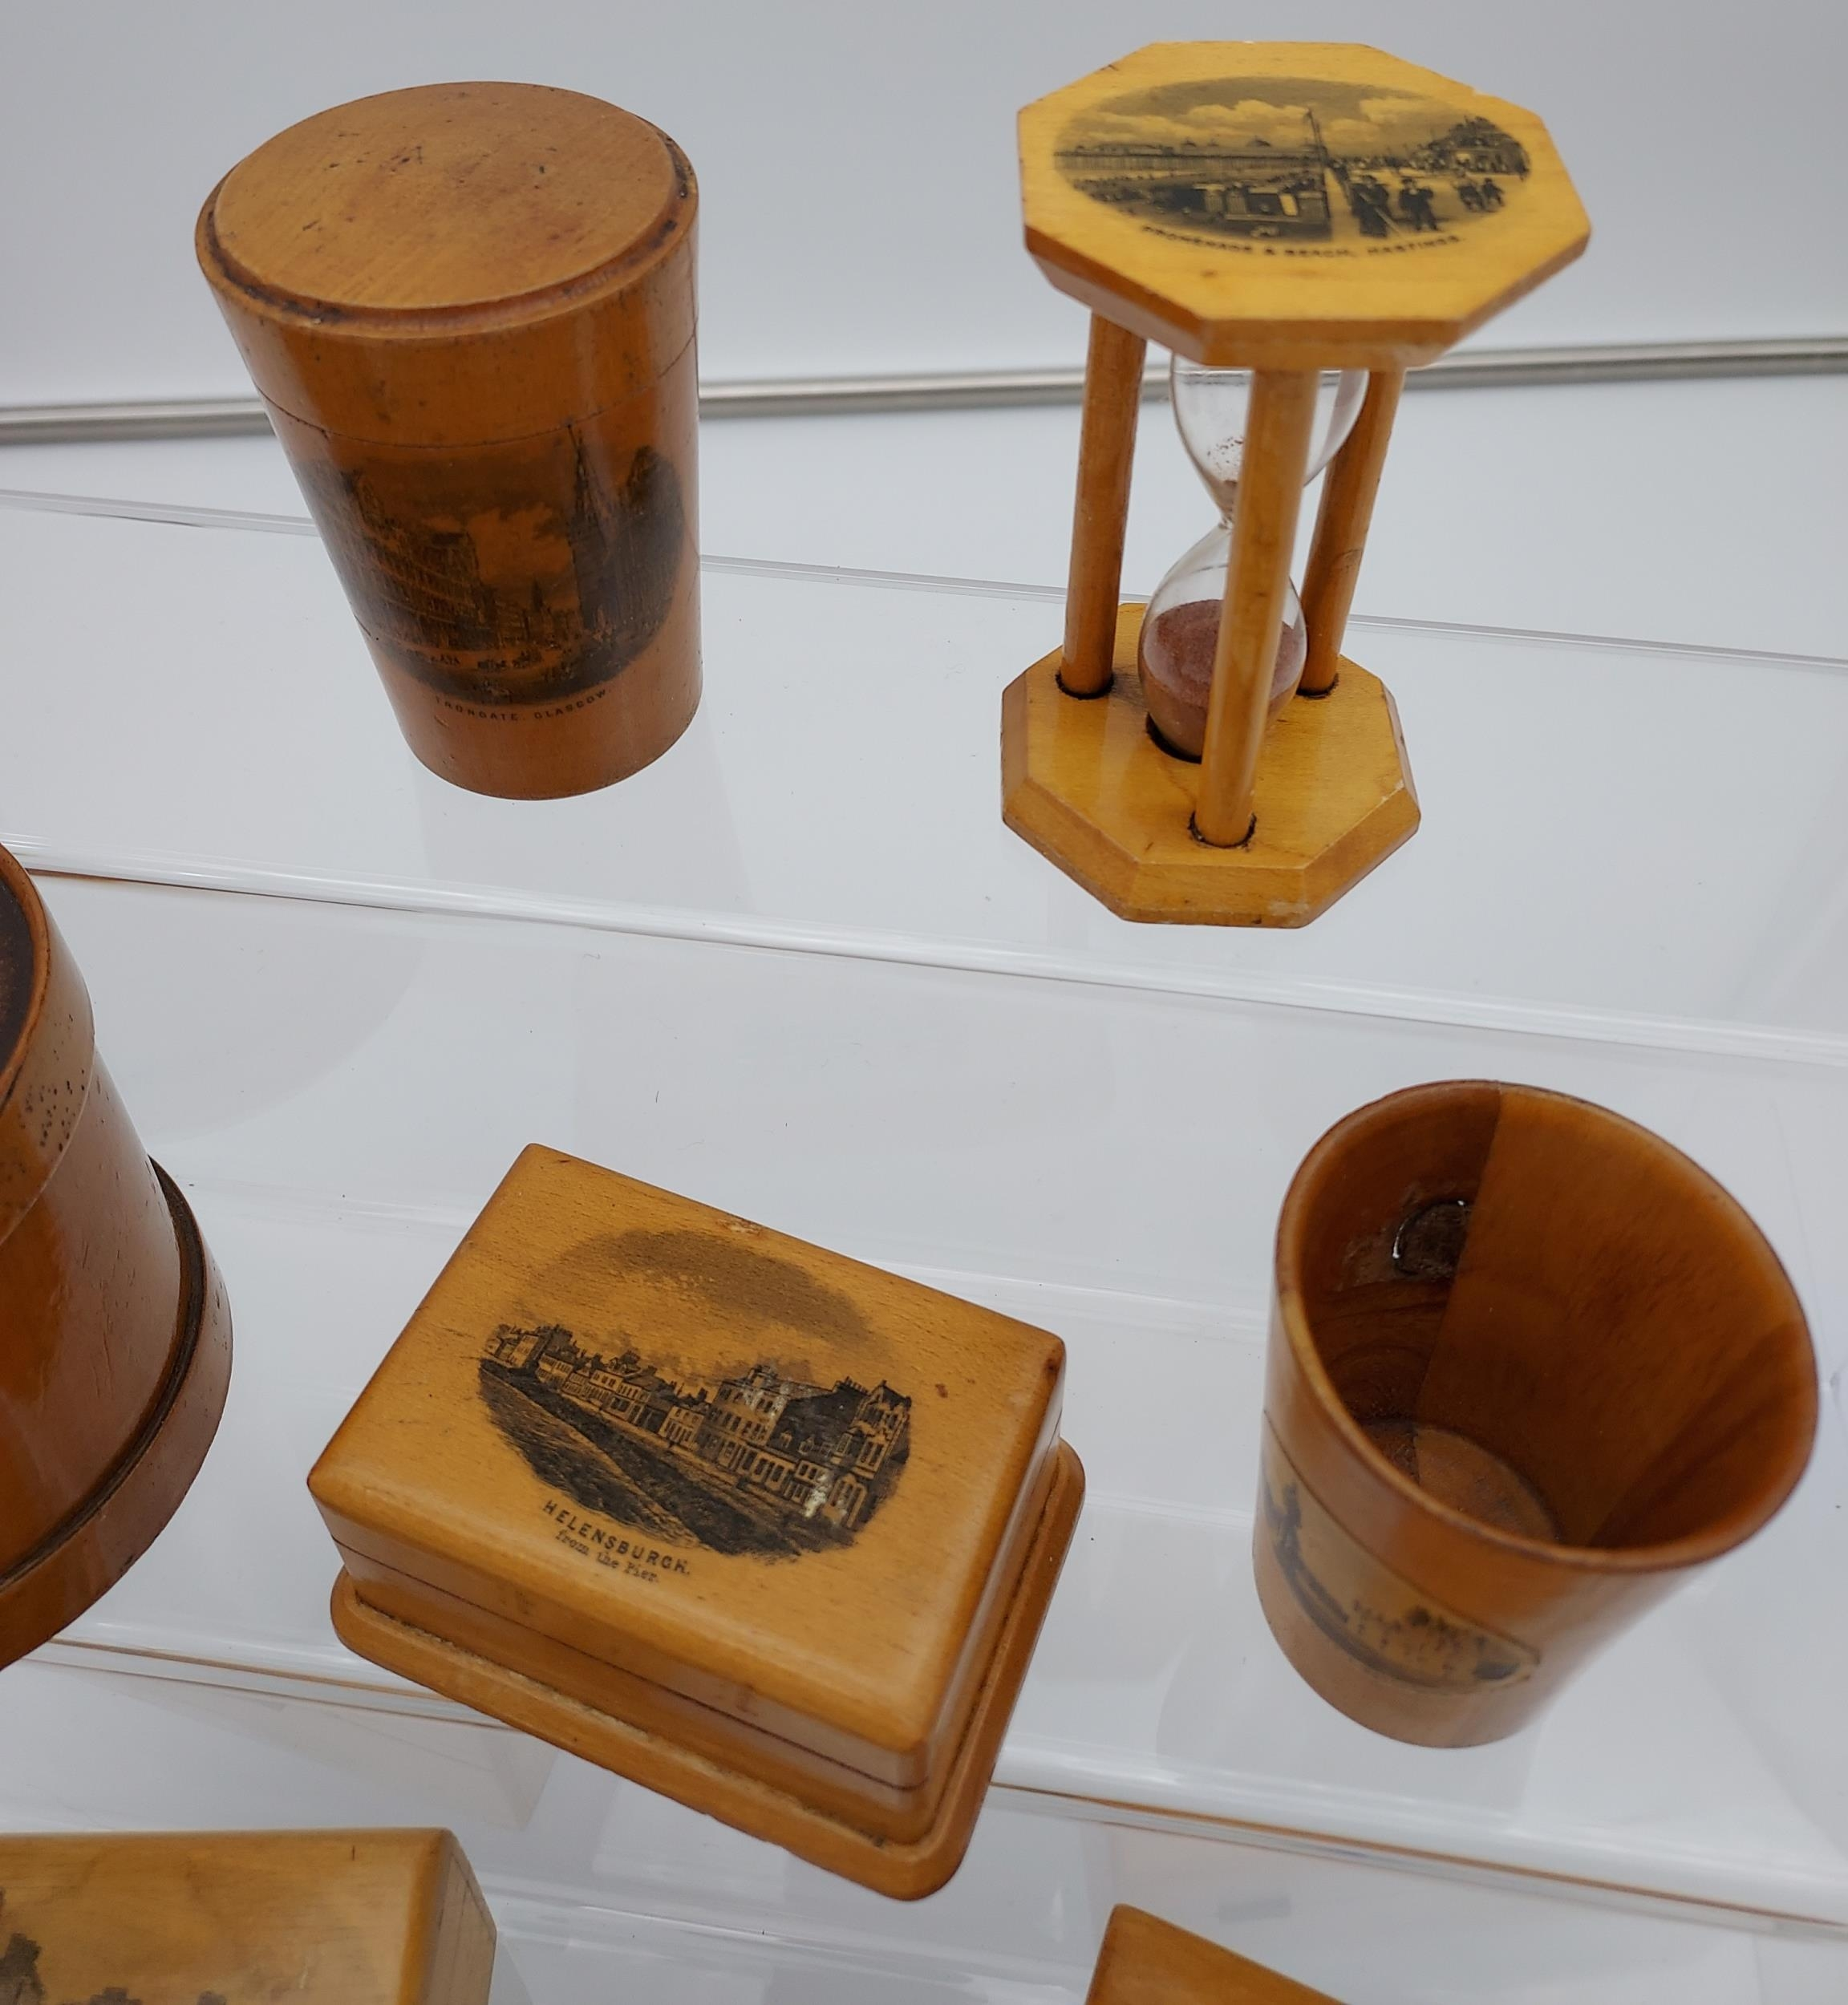 A Lot of 8 pieces of Mauchline ware to include Egg timer, money box, trinket boxes and shot glass - Image 2 of 4